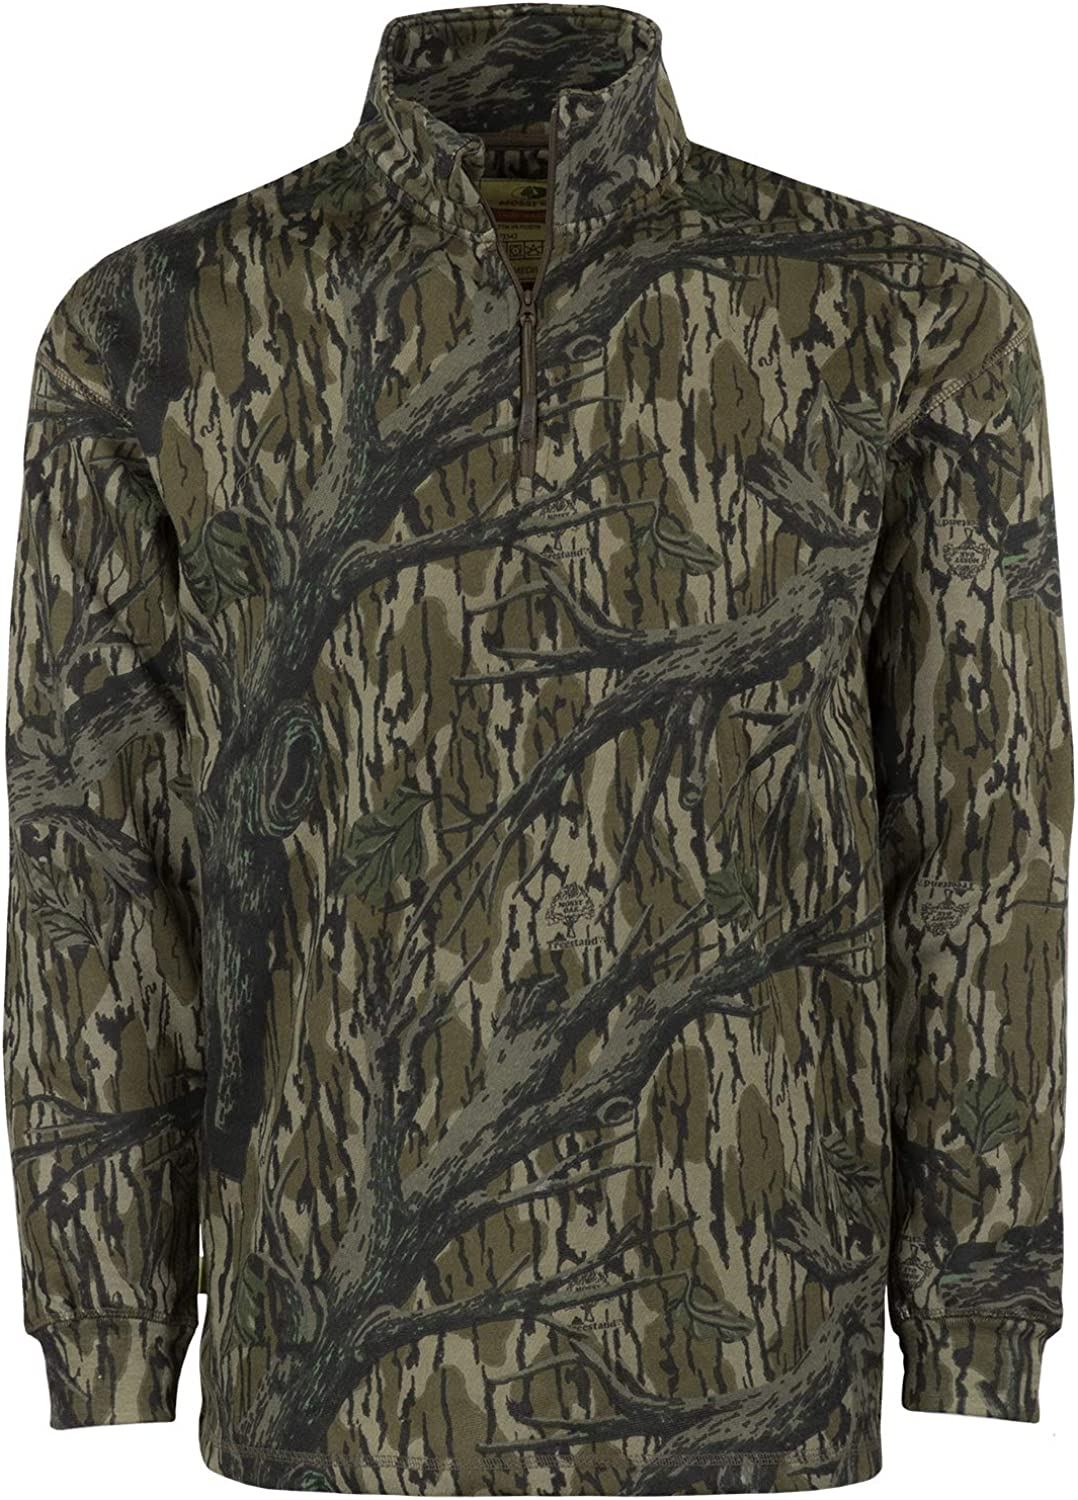 Amazon.com: Mossy Oak Men's Vintage Quarter Zip, Camo Hunting Jacket:  Clothing